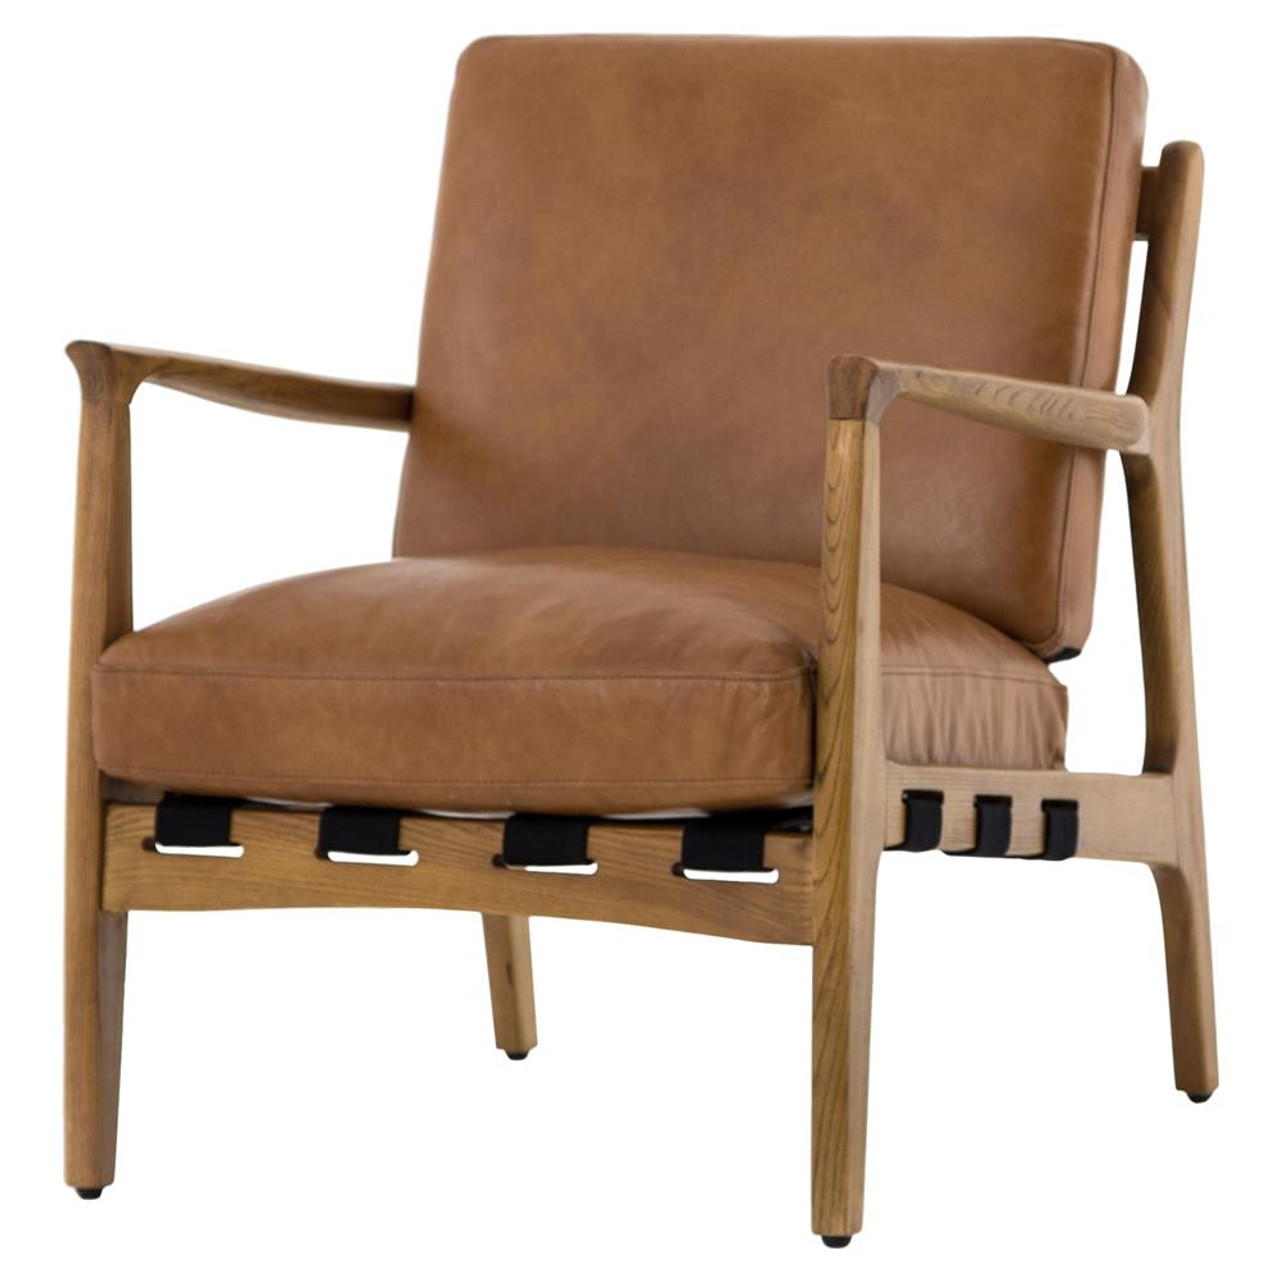 Marvelous Silas Mid Century Modern Tan Leather Arm Chair Short Links Chair Design For Home Short Linksinfo